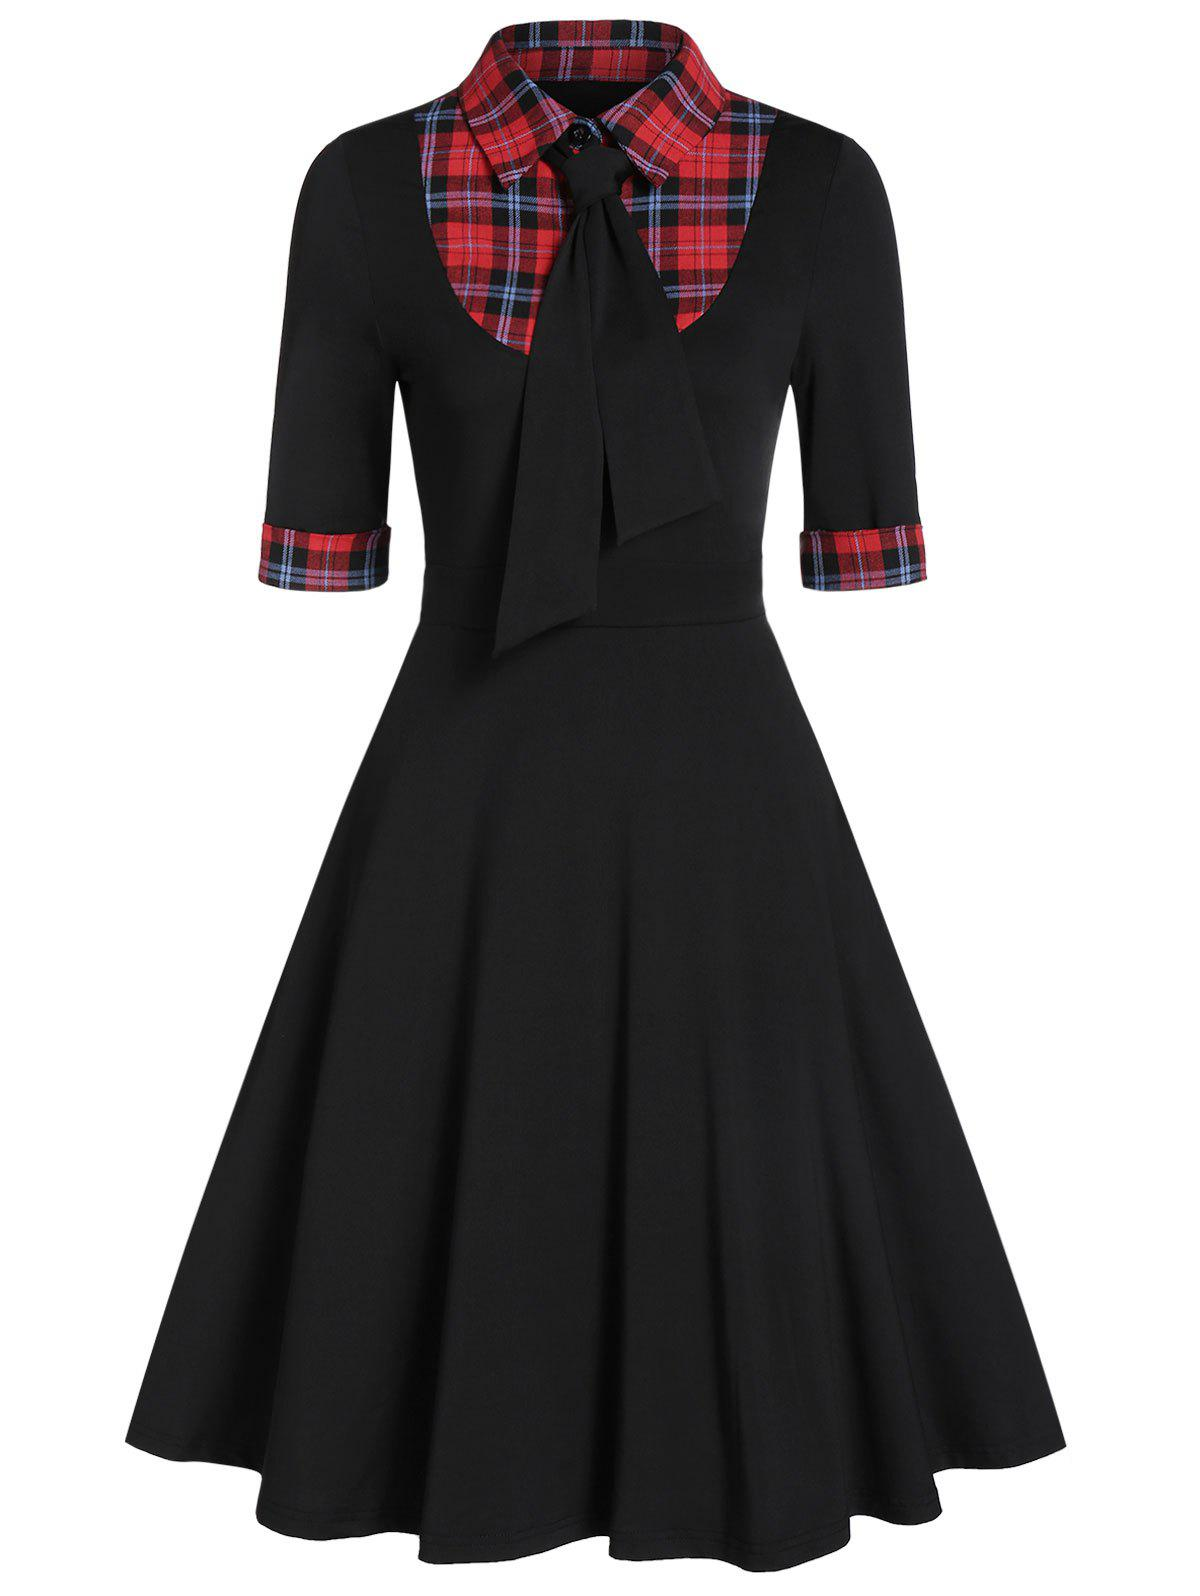 Fashion Plaid Panel High Waist Fit And Flare Dress